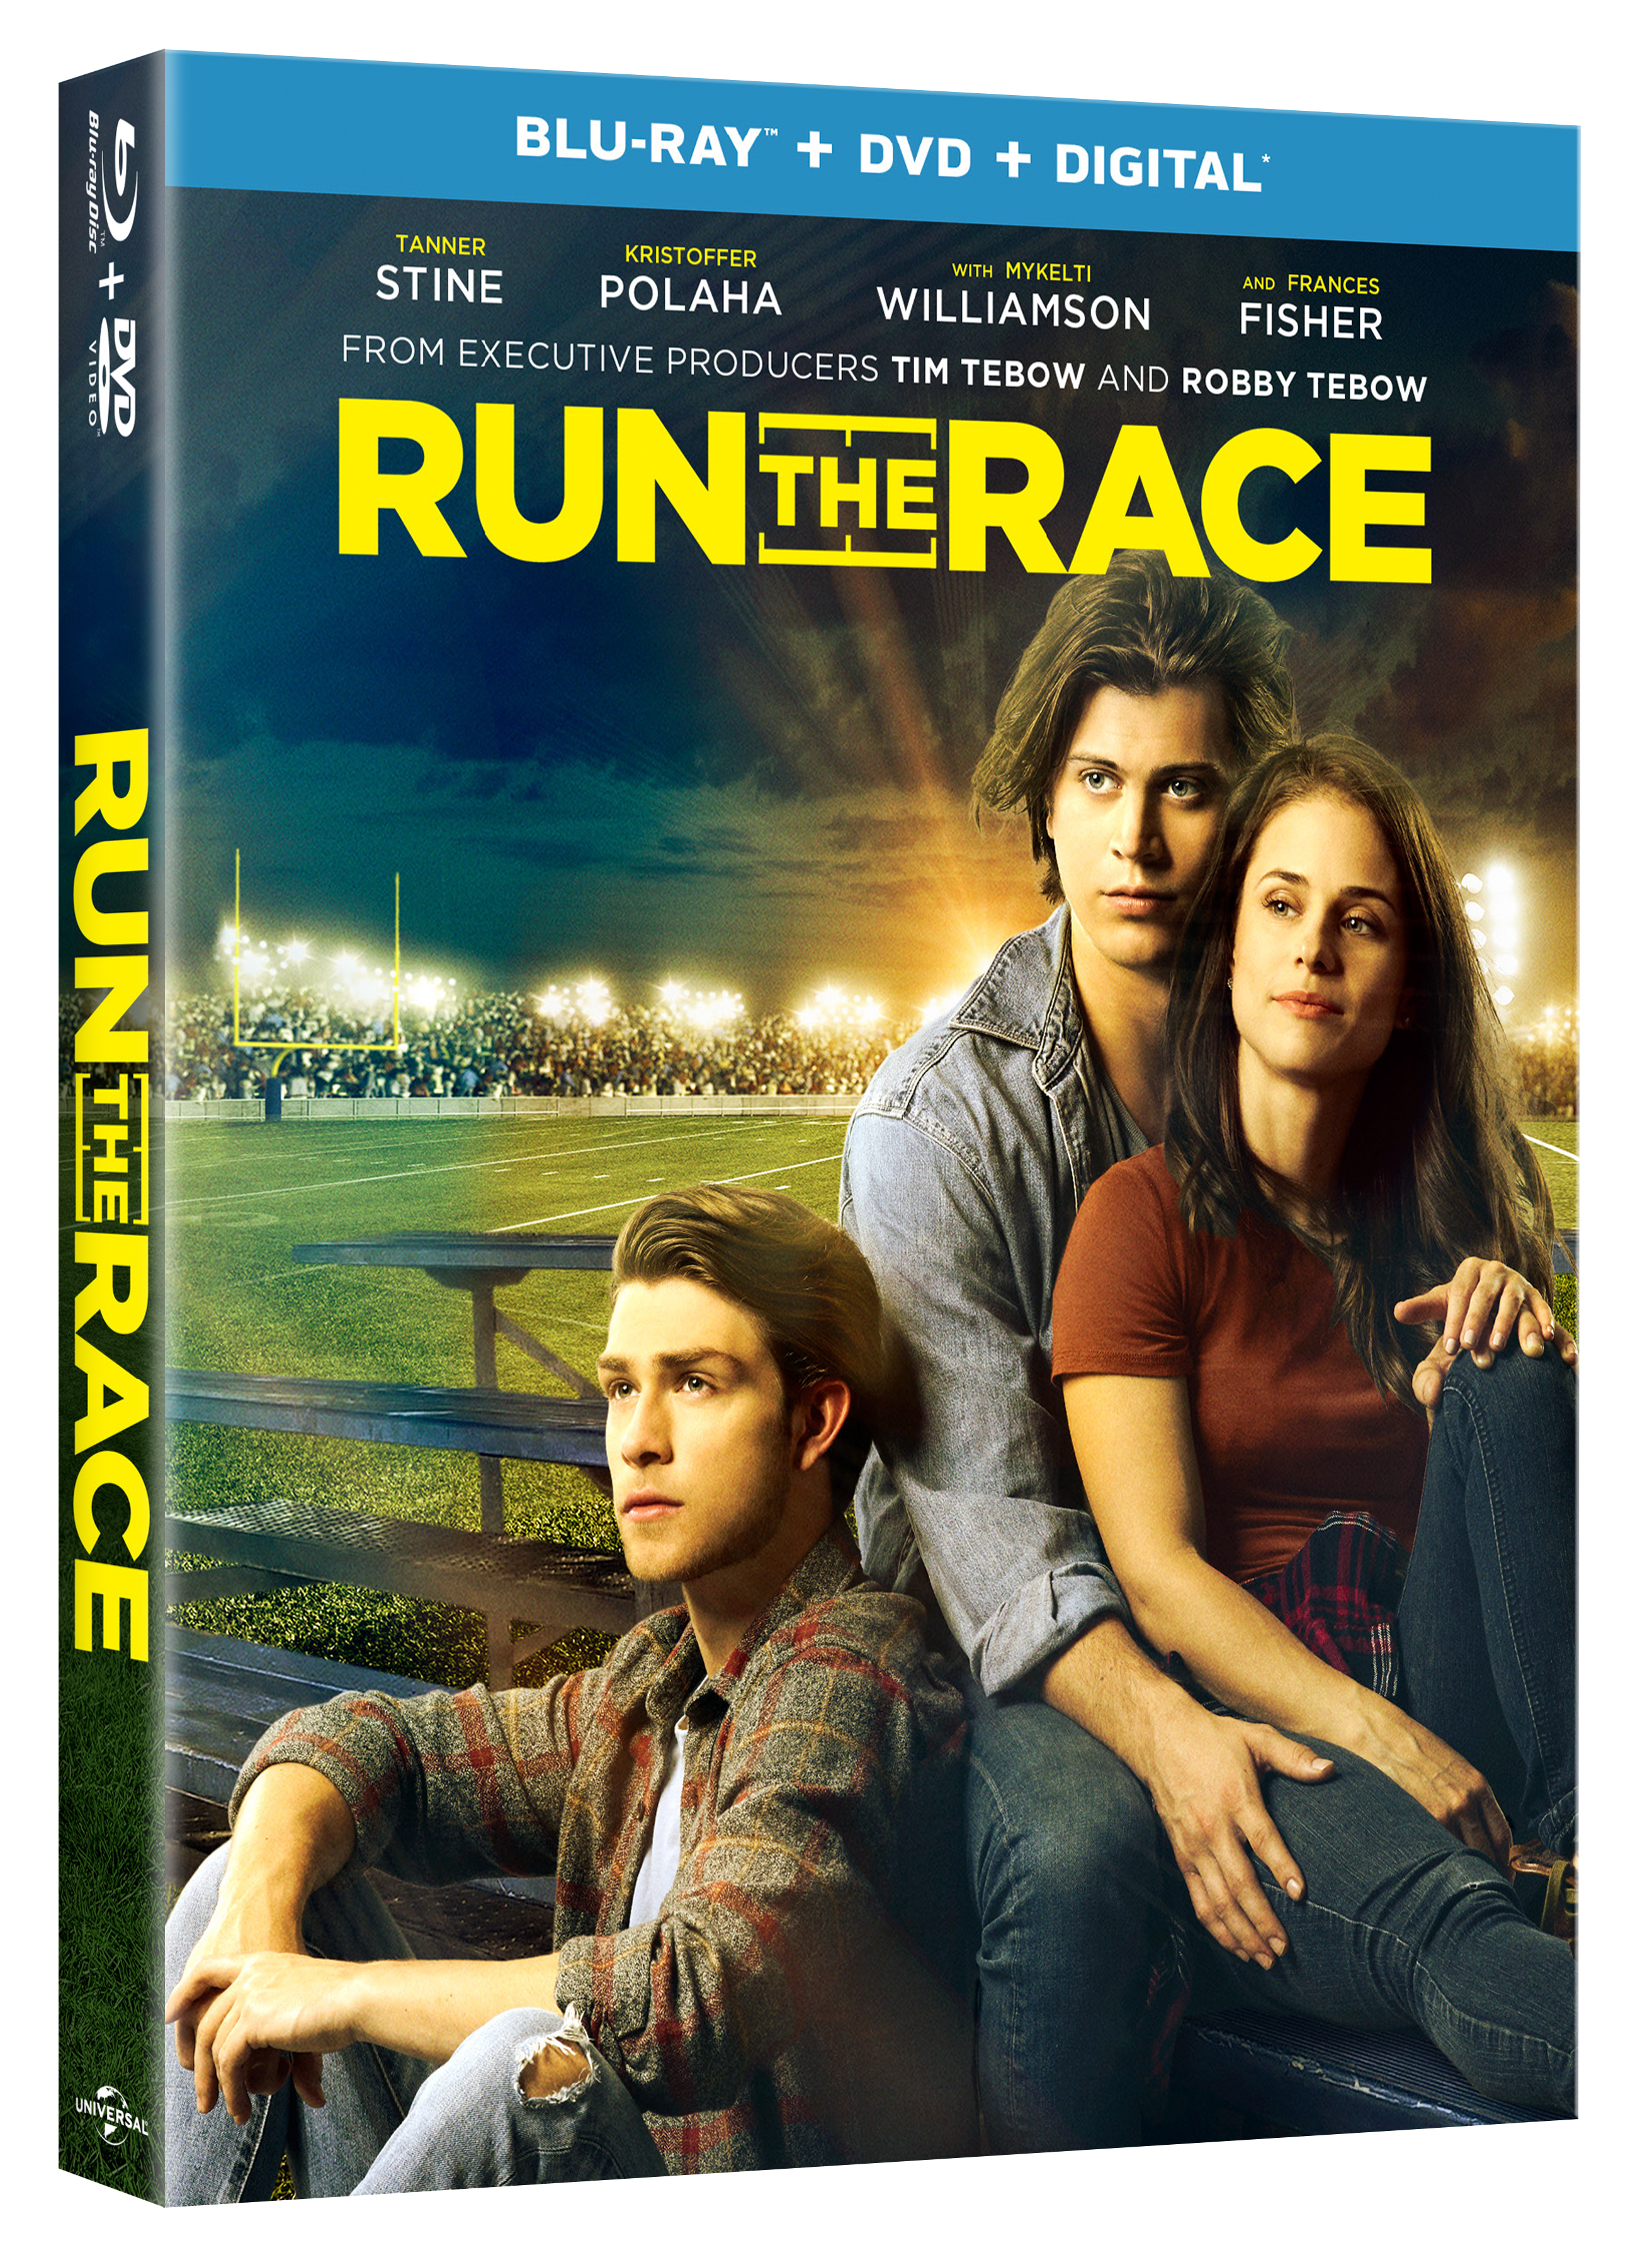 RUN THE RACE DVD + DIGITAL